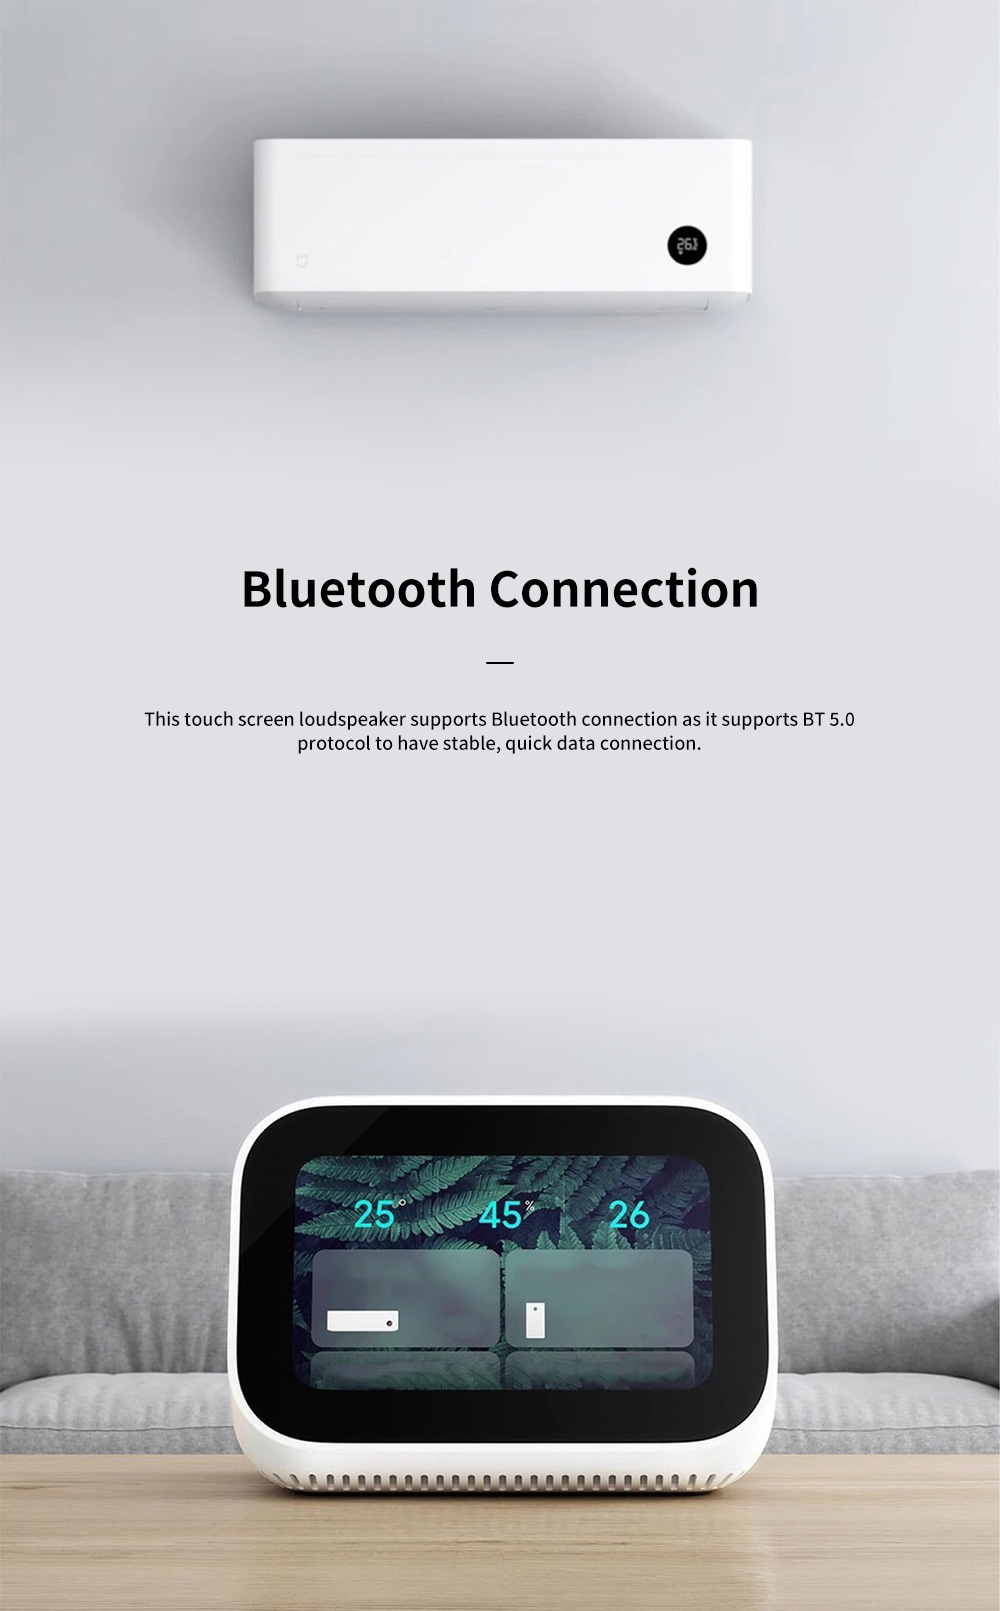 XIAOMI Touch Screen Loudspeaker for Family Use Intelligent Wireless Baffle Box Bluetooth Connection Sound Box 8